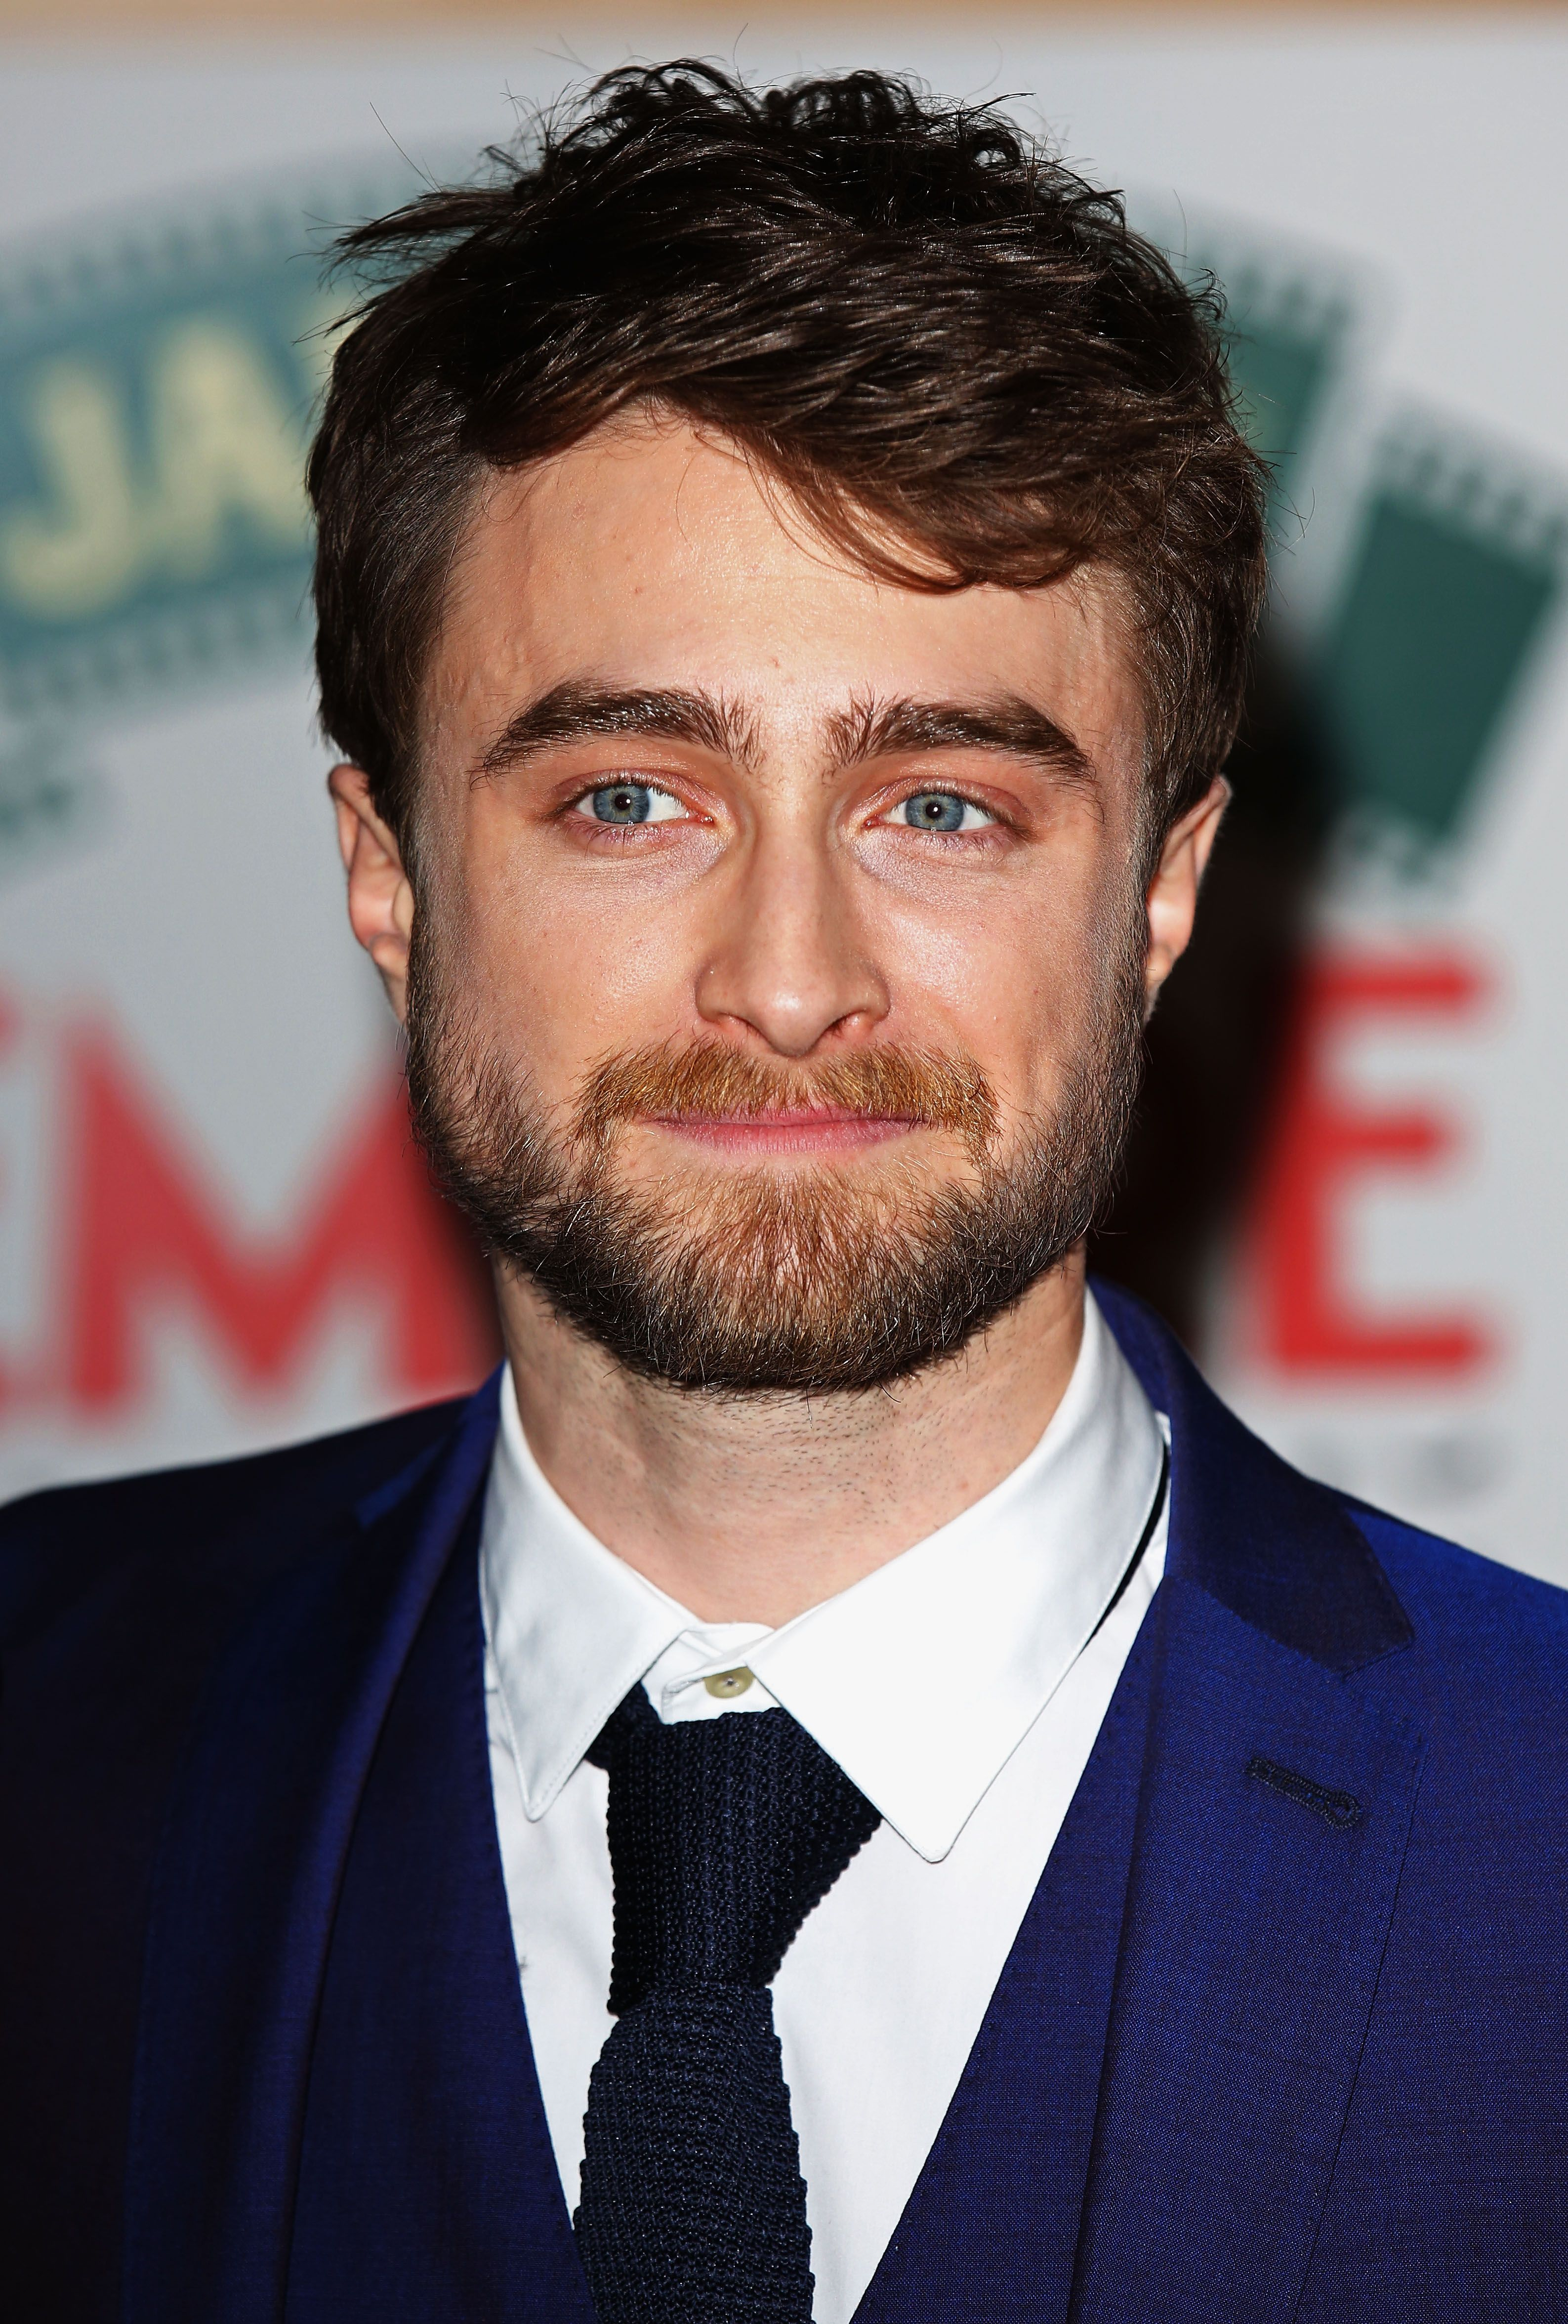 Daniel Radcliffe - British Actor